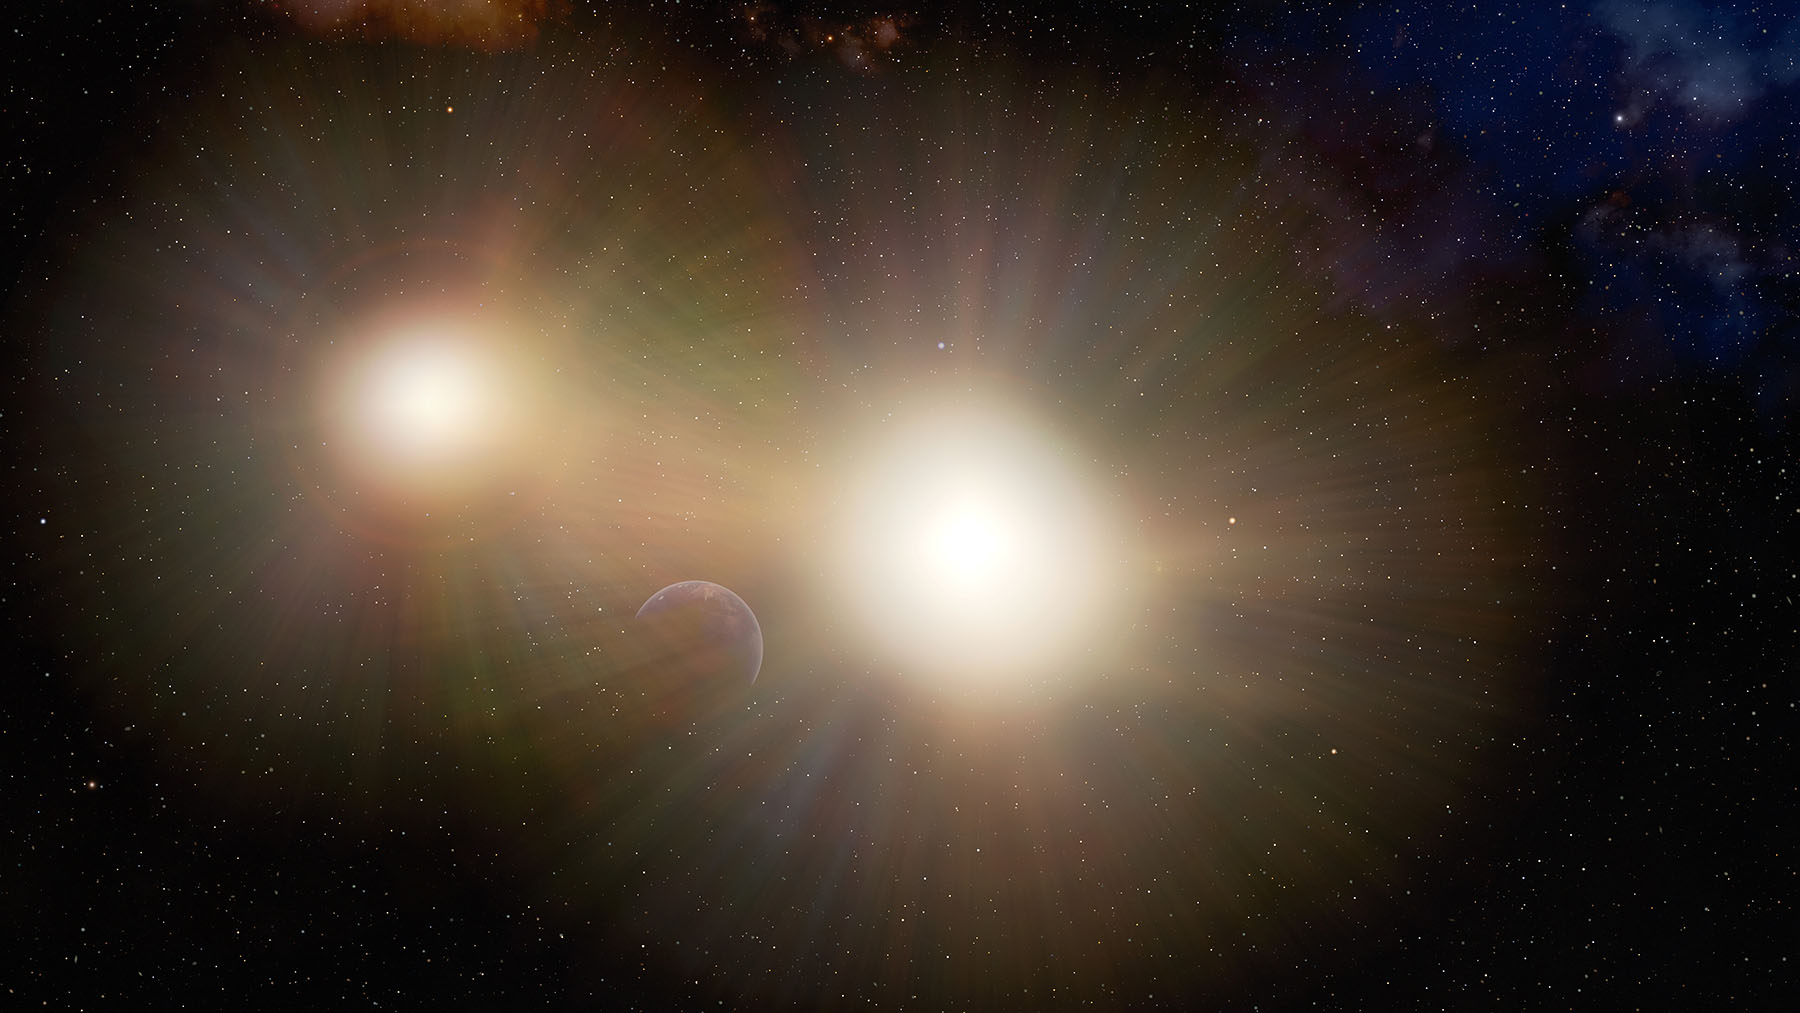 This illustration depicts a planet partially hidden in the glare of its host star and a nearby companion star. After examining a number of binary stars, astronomers have concluded that Earth-sized planets in many two-star systems might be going unnoticed by transit searches, which look for changes in the light from a star when a planet passes in front of it. The light from the second star makes it more difficult to detect the changes in the host star's light when the planet passes in front of it.